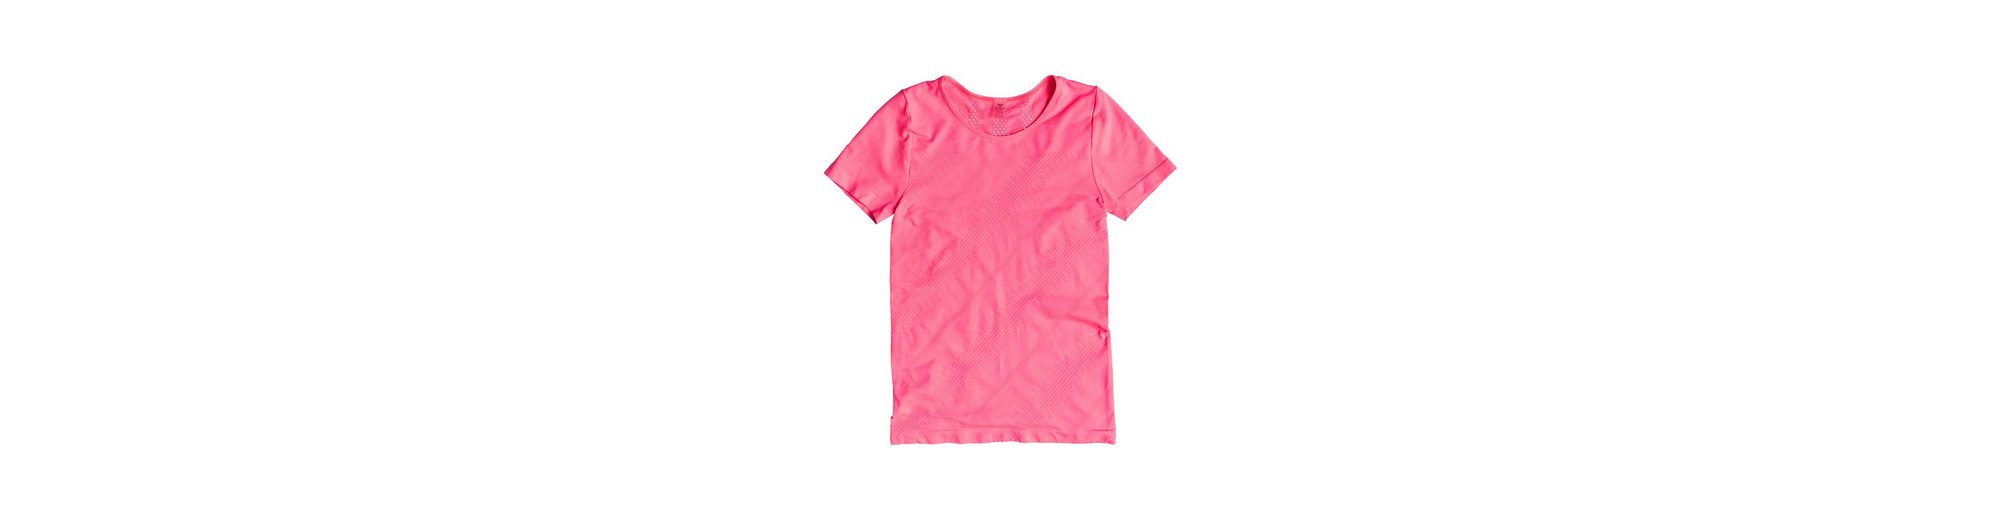 Funktionelles Vanilla Funktionelles Roxy Roxy T Funktionelles Roxy Shirt Temptation Vanilla Shirt T Temptation T S6nnTWp